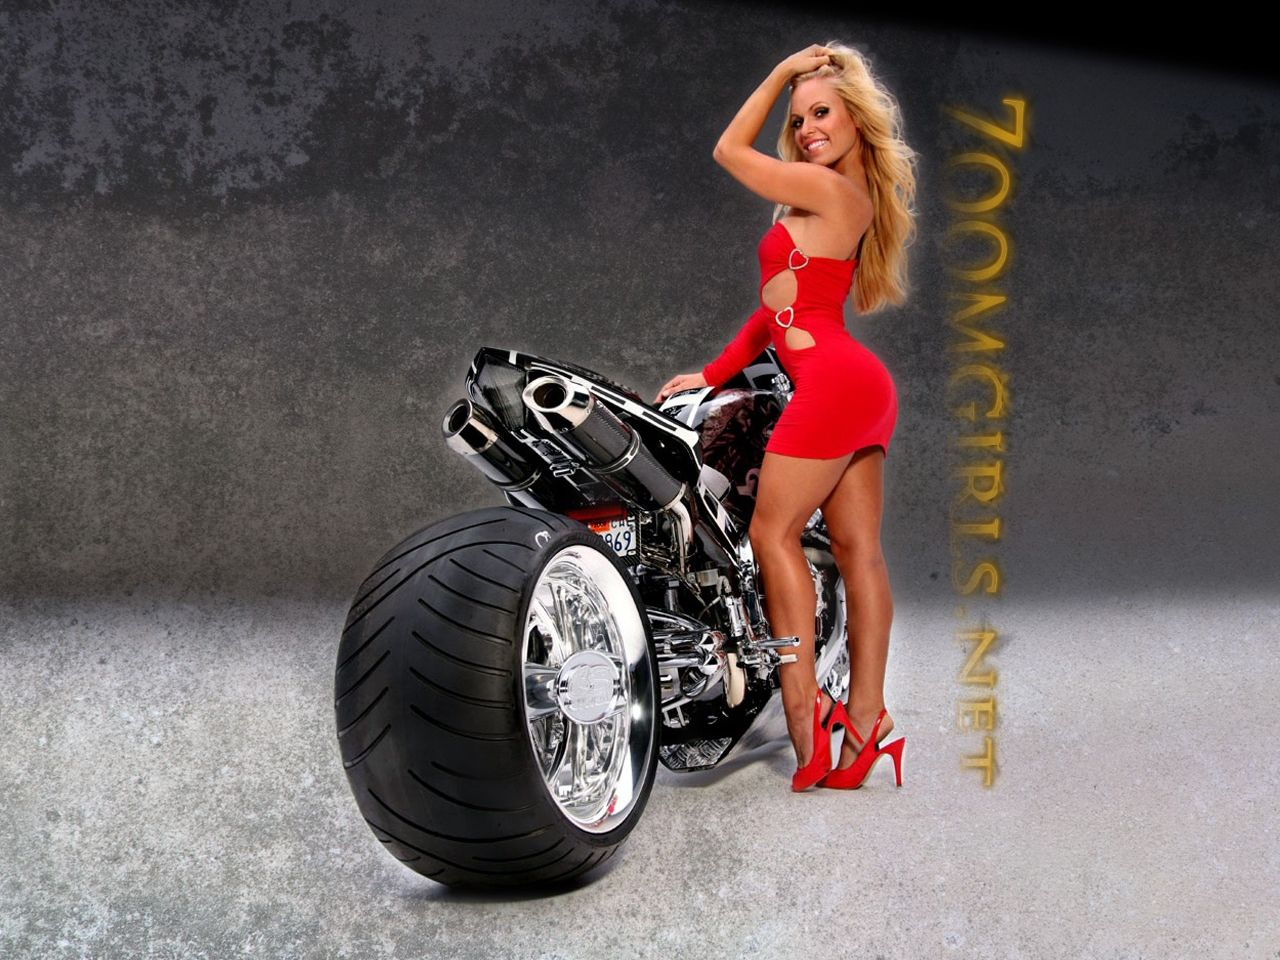 47 motorcycle girl wallpaper on wallpapersafari - Pictures of chicks on bikes ...